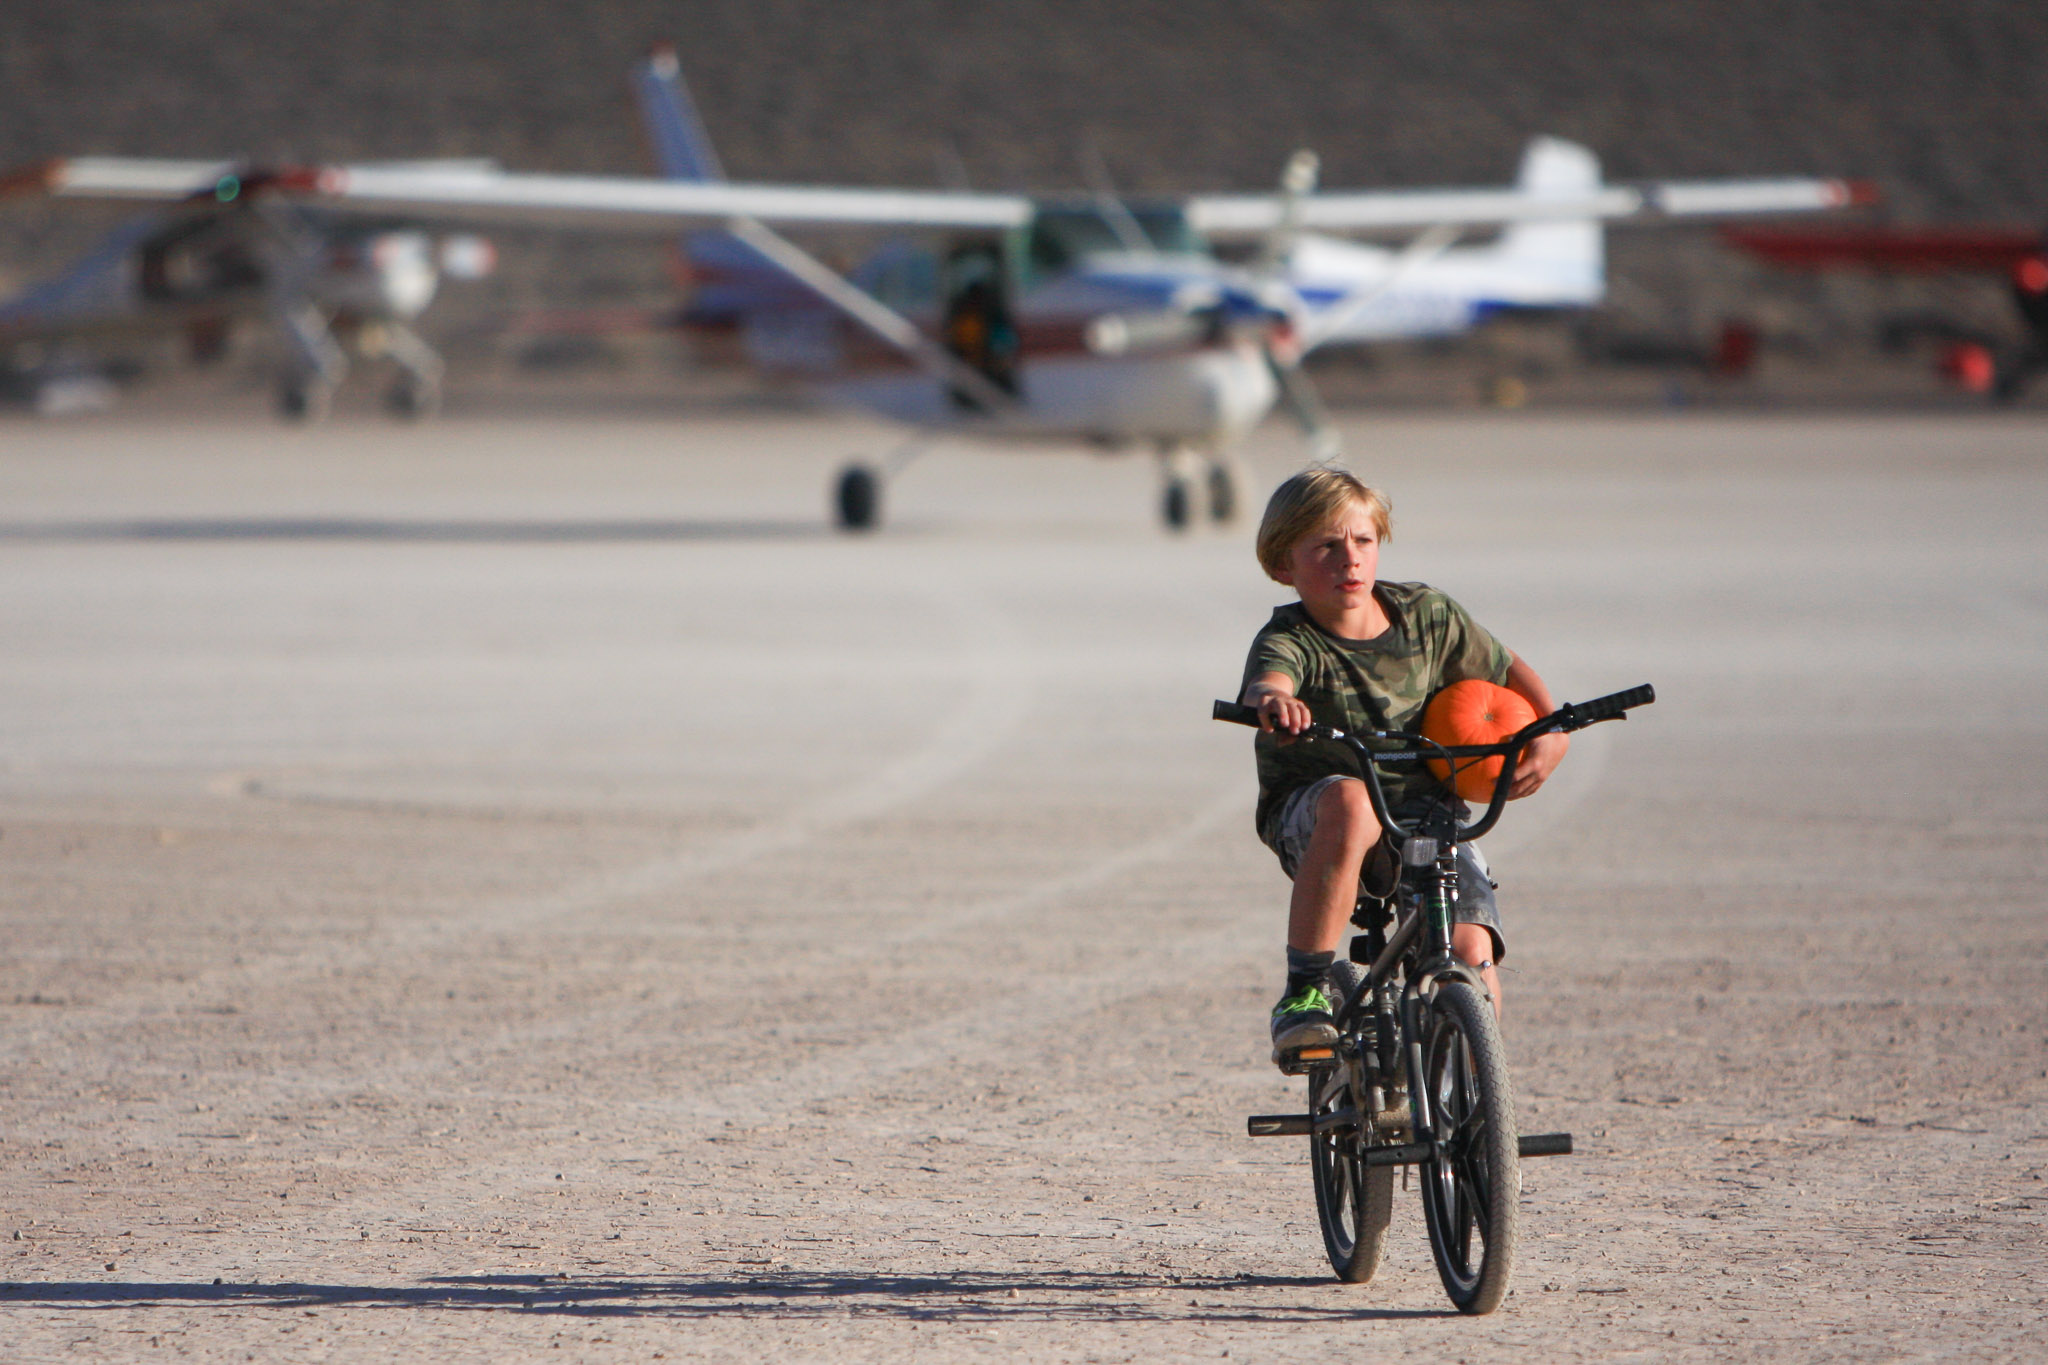 Everyone knows what it's like to be the kid on a bike at a desert fly-in, hauling ammo for the pumpkin drop.